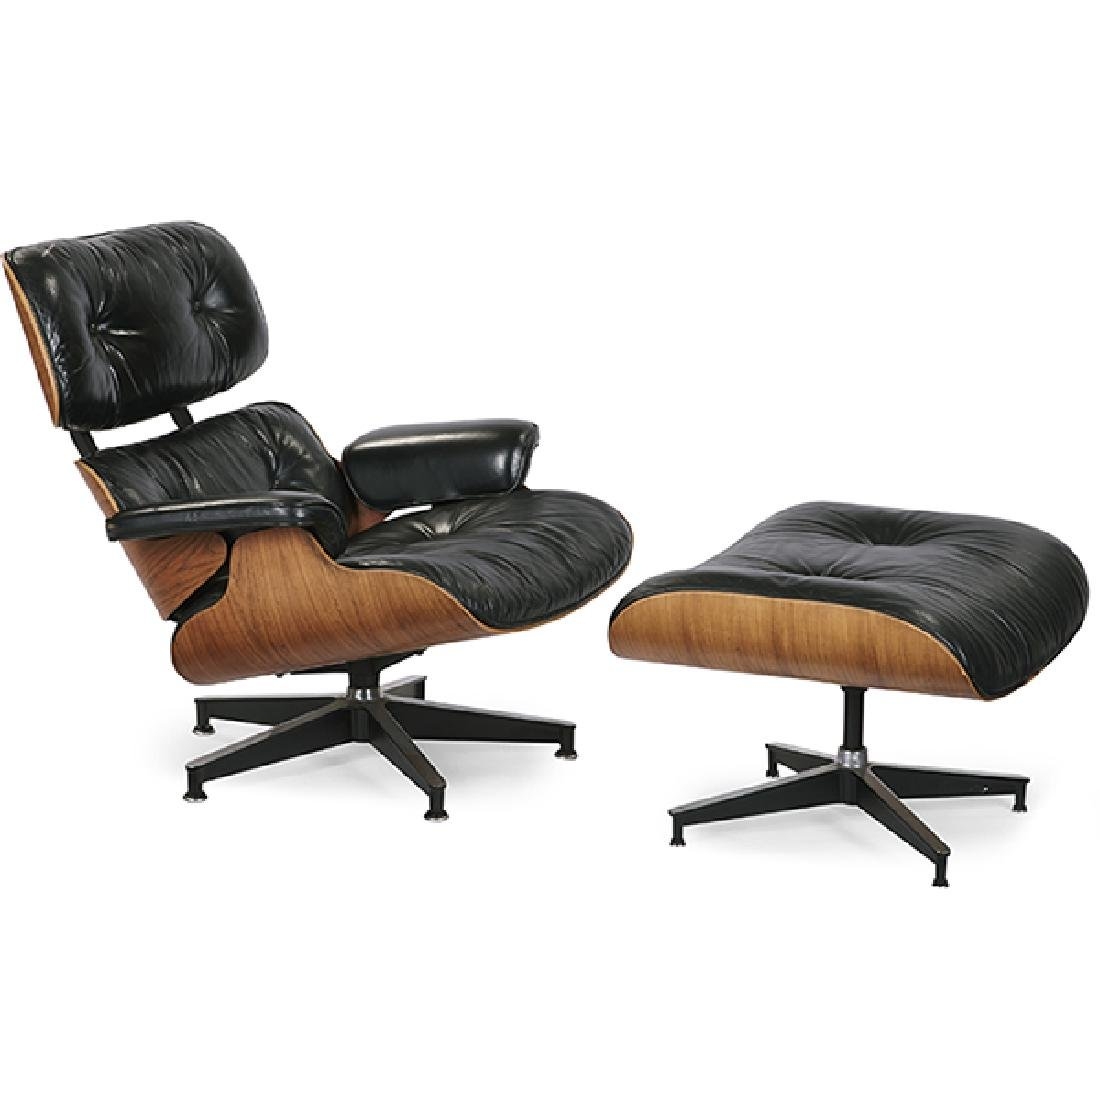 Charles & Ray Eames for Herman Miller 670/671 rosewood